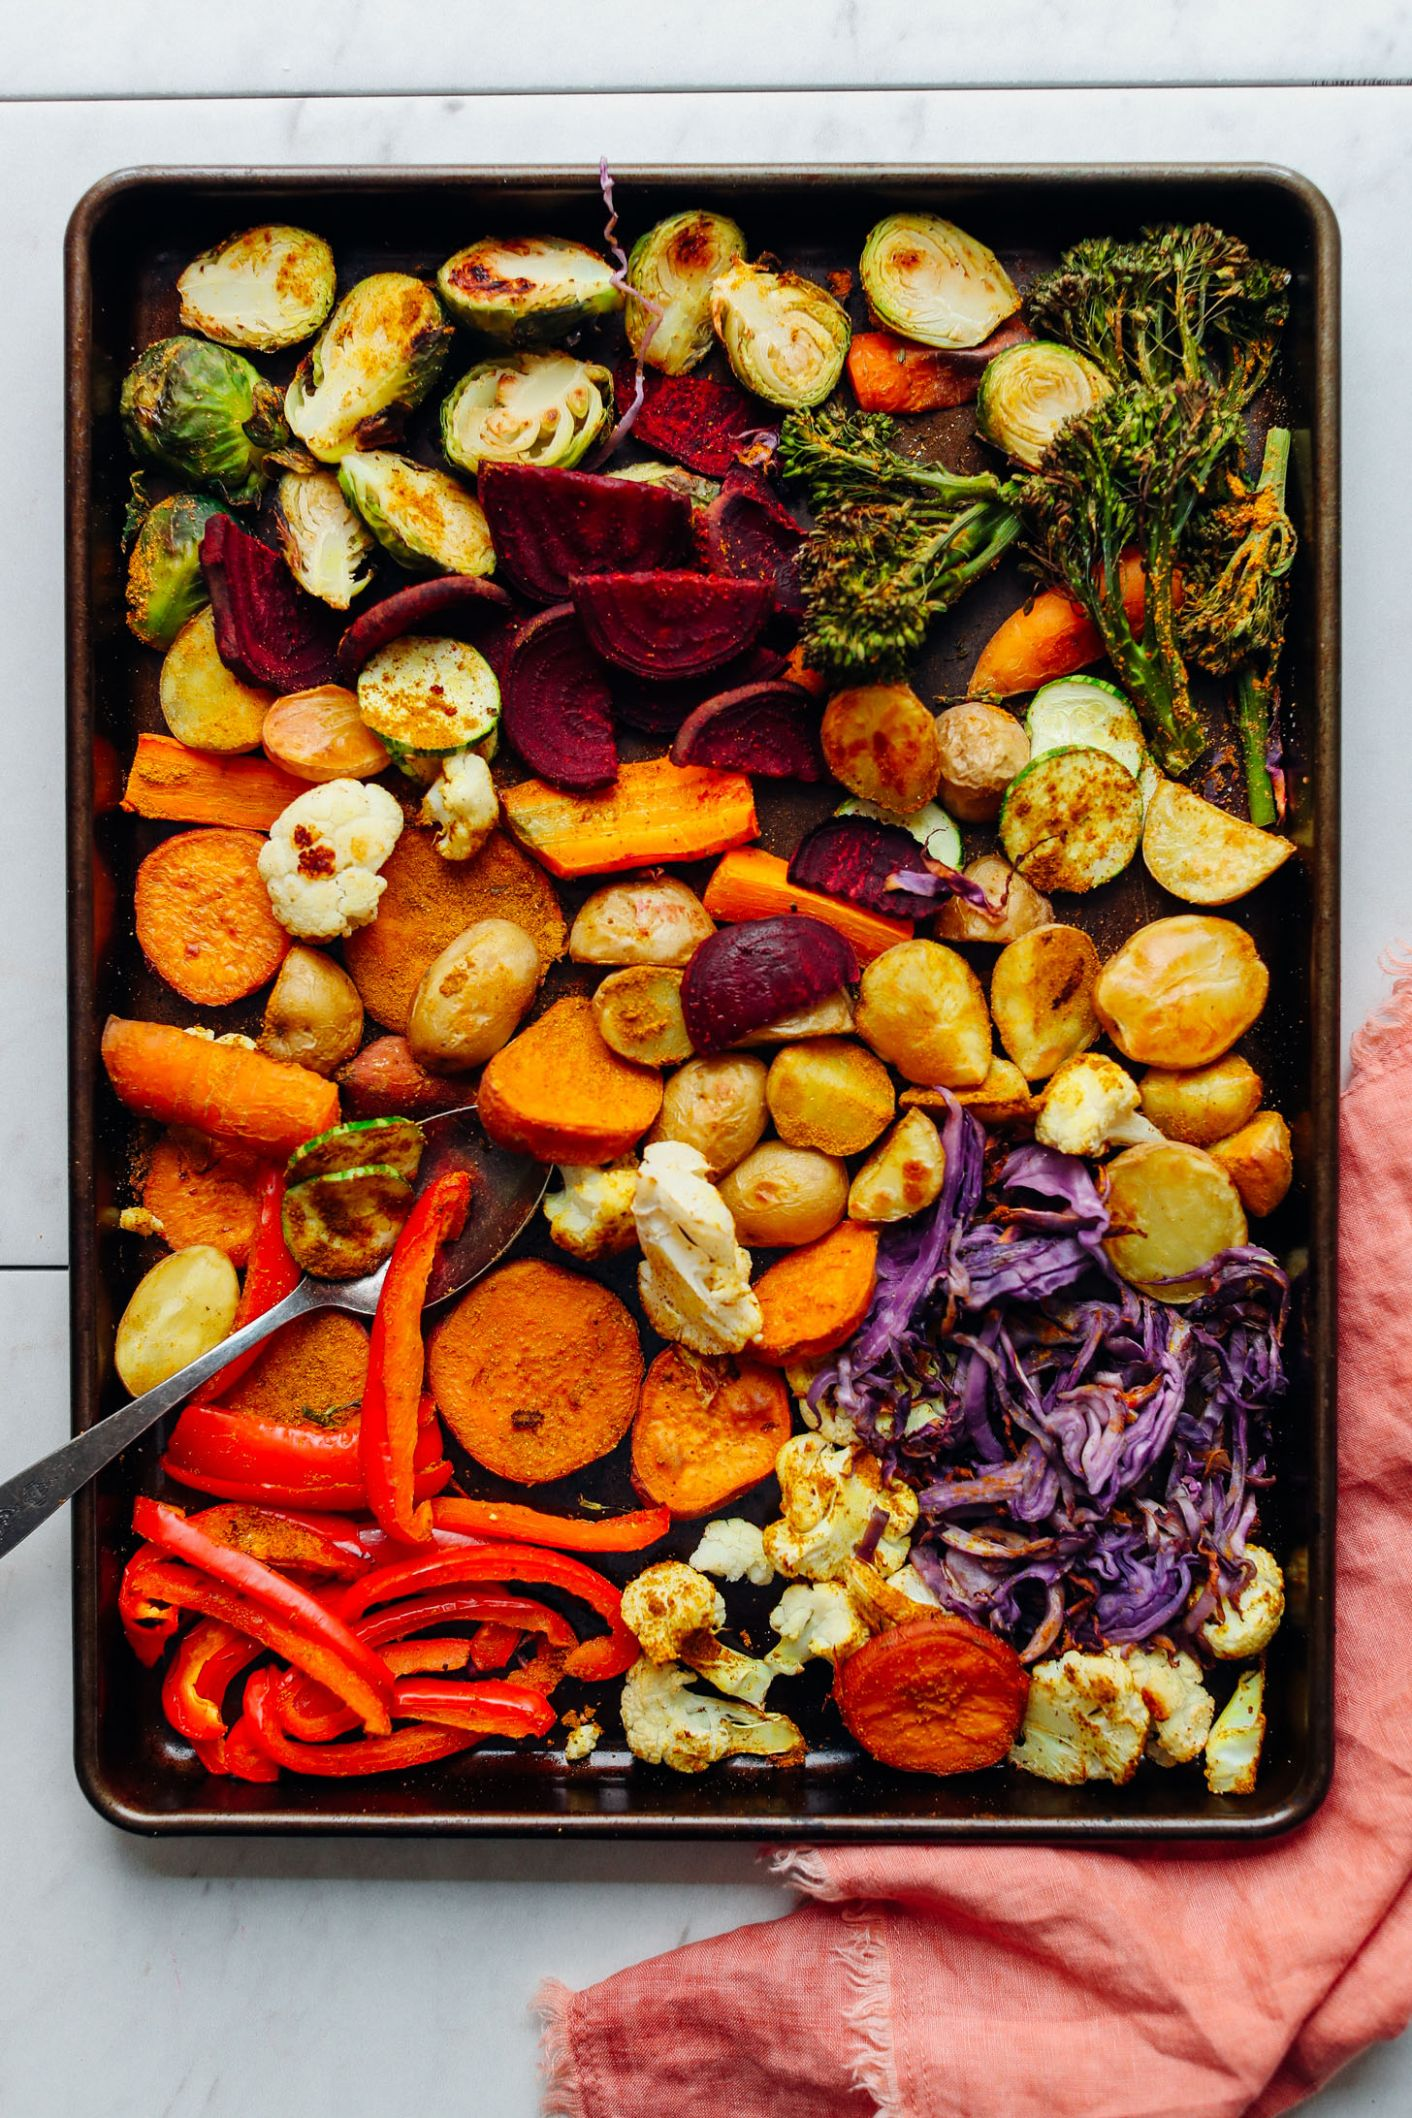 Oil-Free Roasted Vegetables - Vegetable Recipes No Fat